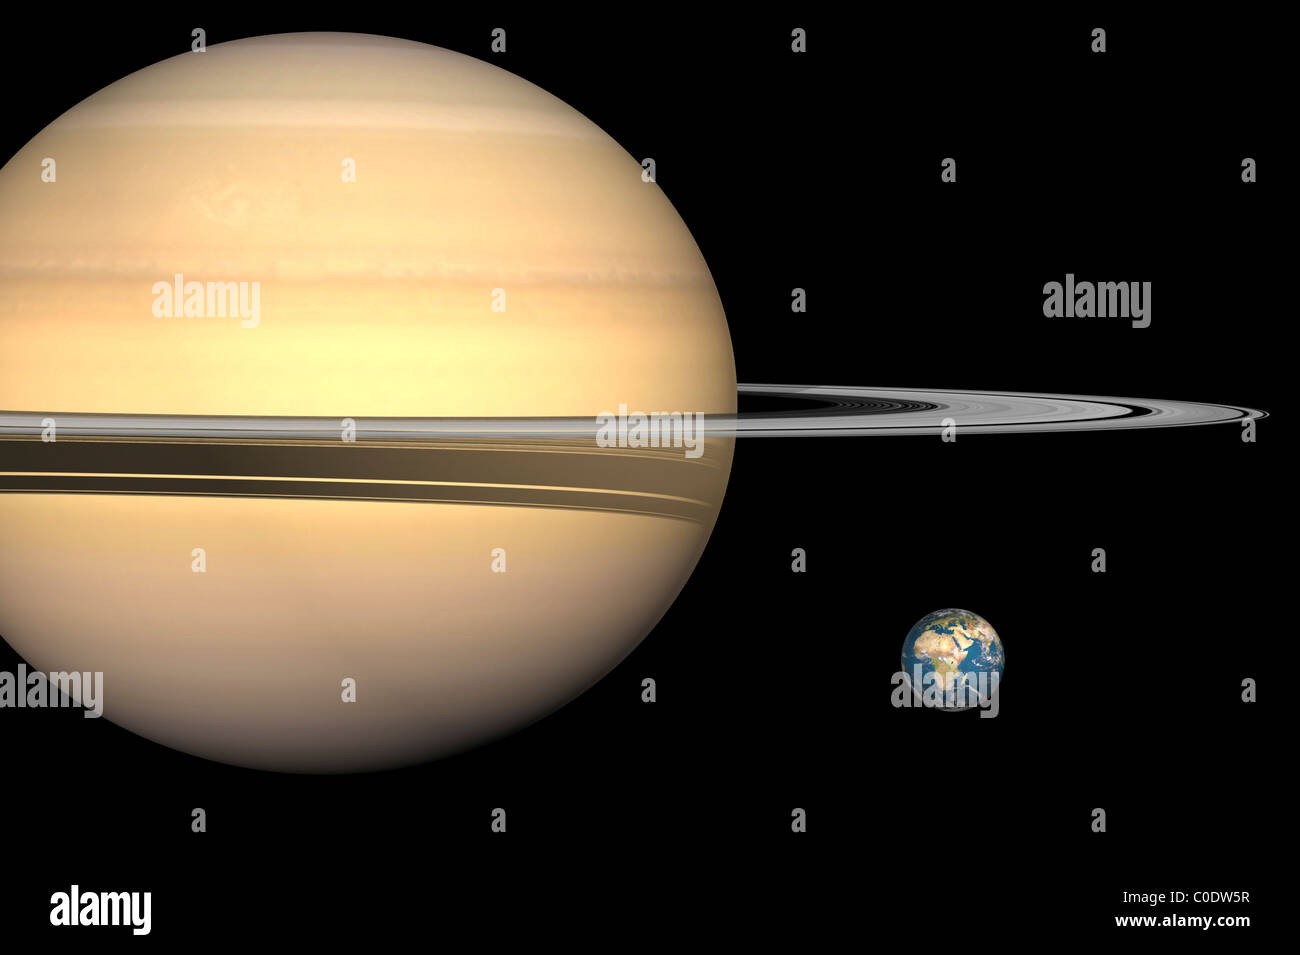 Illustration Of Saturn And Earth To Scale Stock Photo